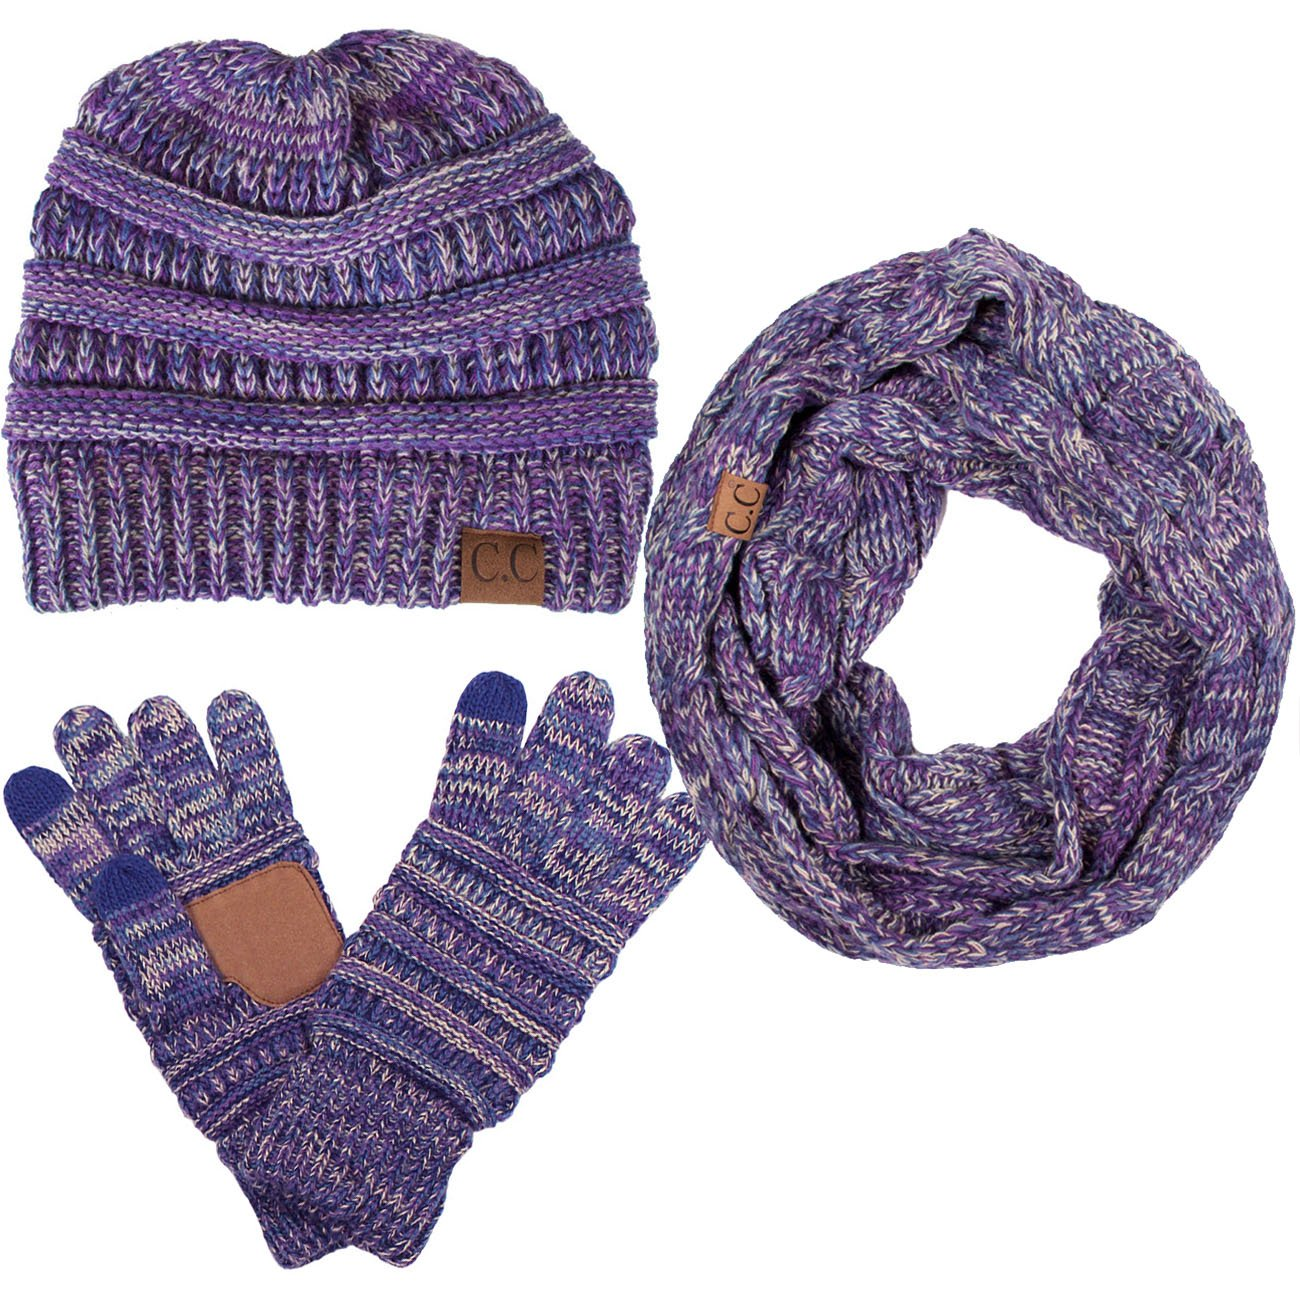 ScarvesMe CC 3pc Multi Tone Trendy Warm Chunky Soft Stretch Cable Knit Beanie, Scarves and Gloves Set